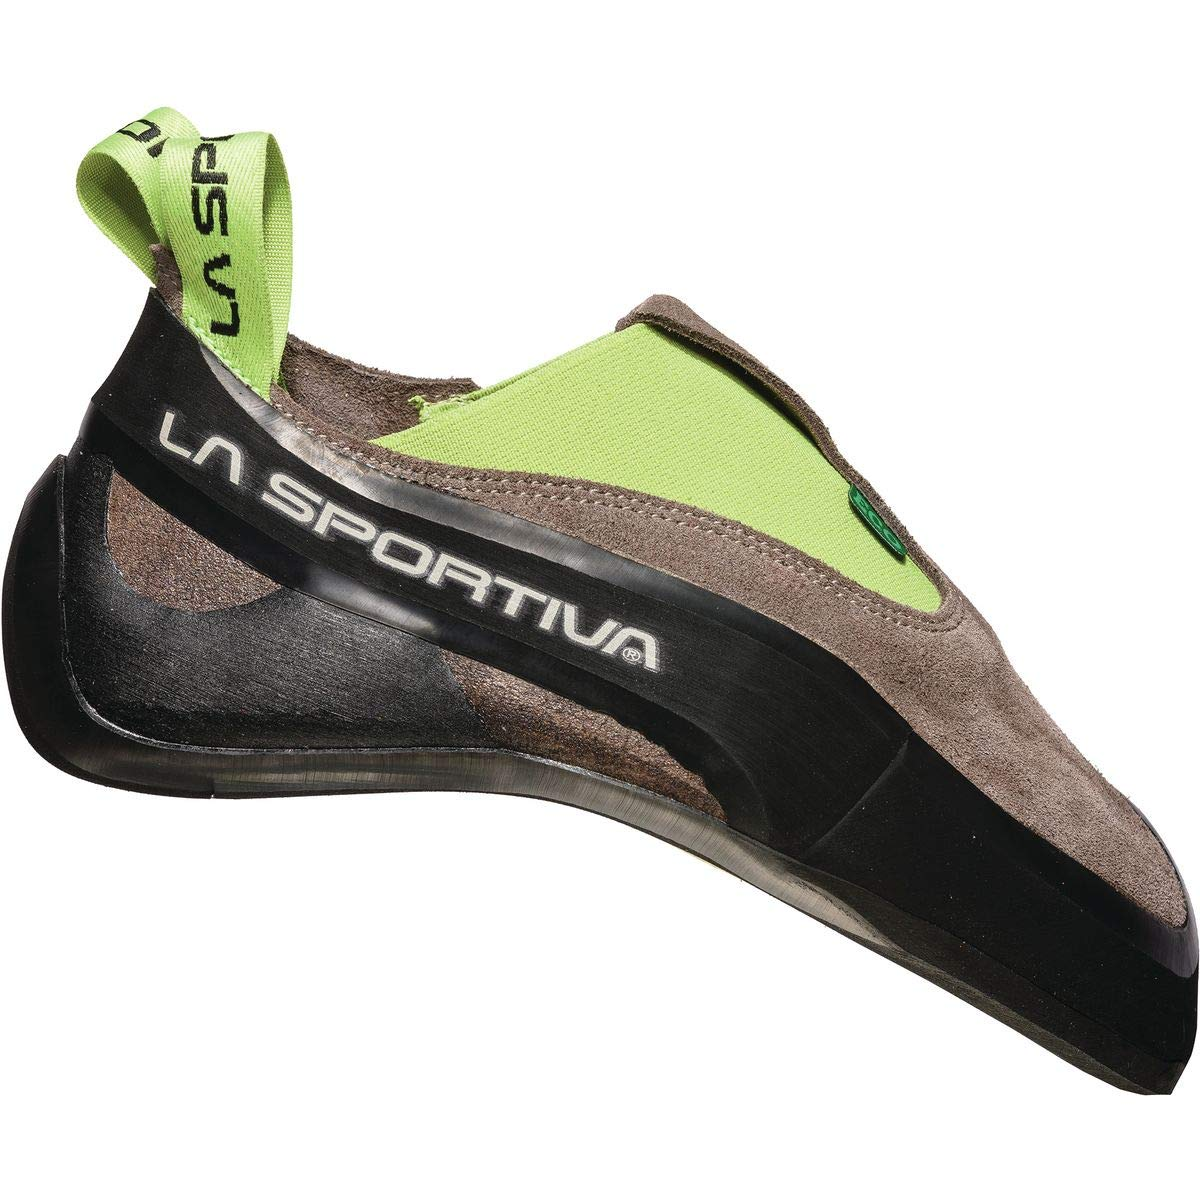 La Sportiva Cobra Eco Climbing Shoe - Men's 20O-804705-41.5